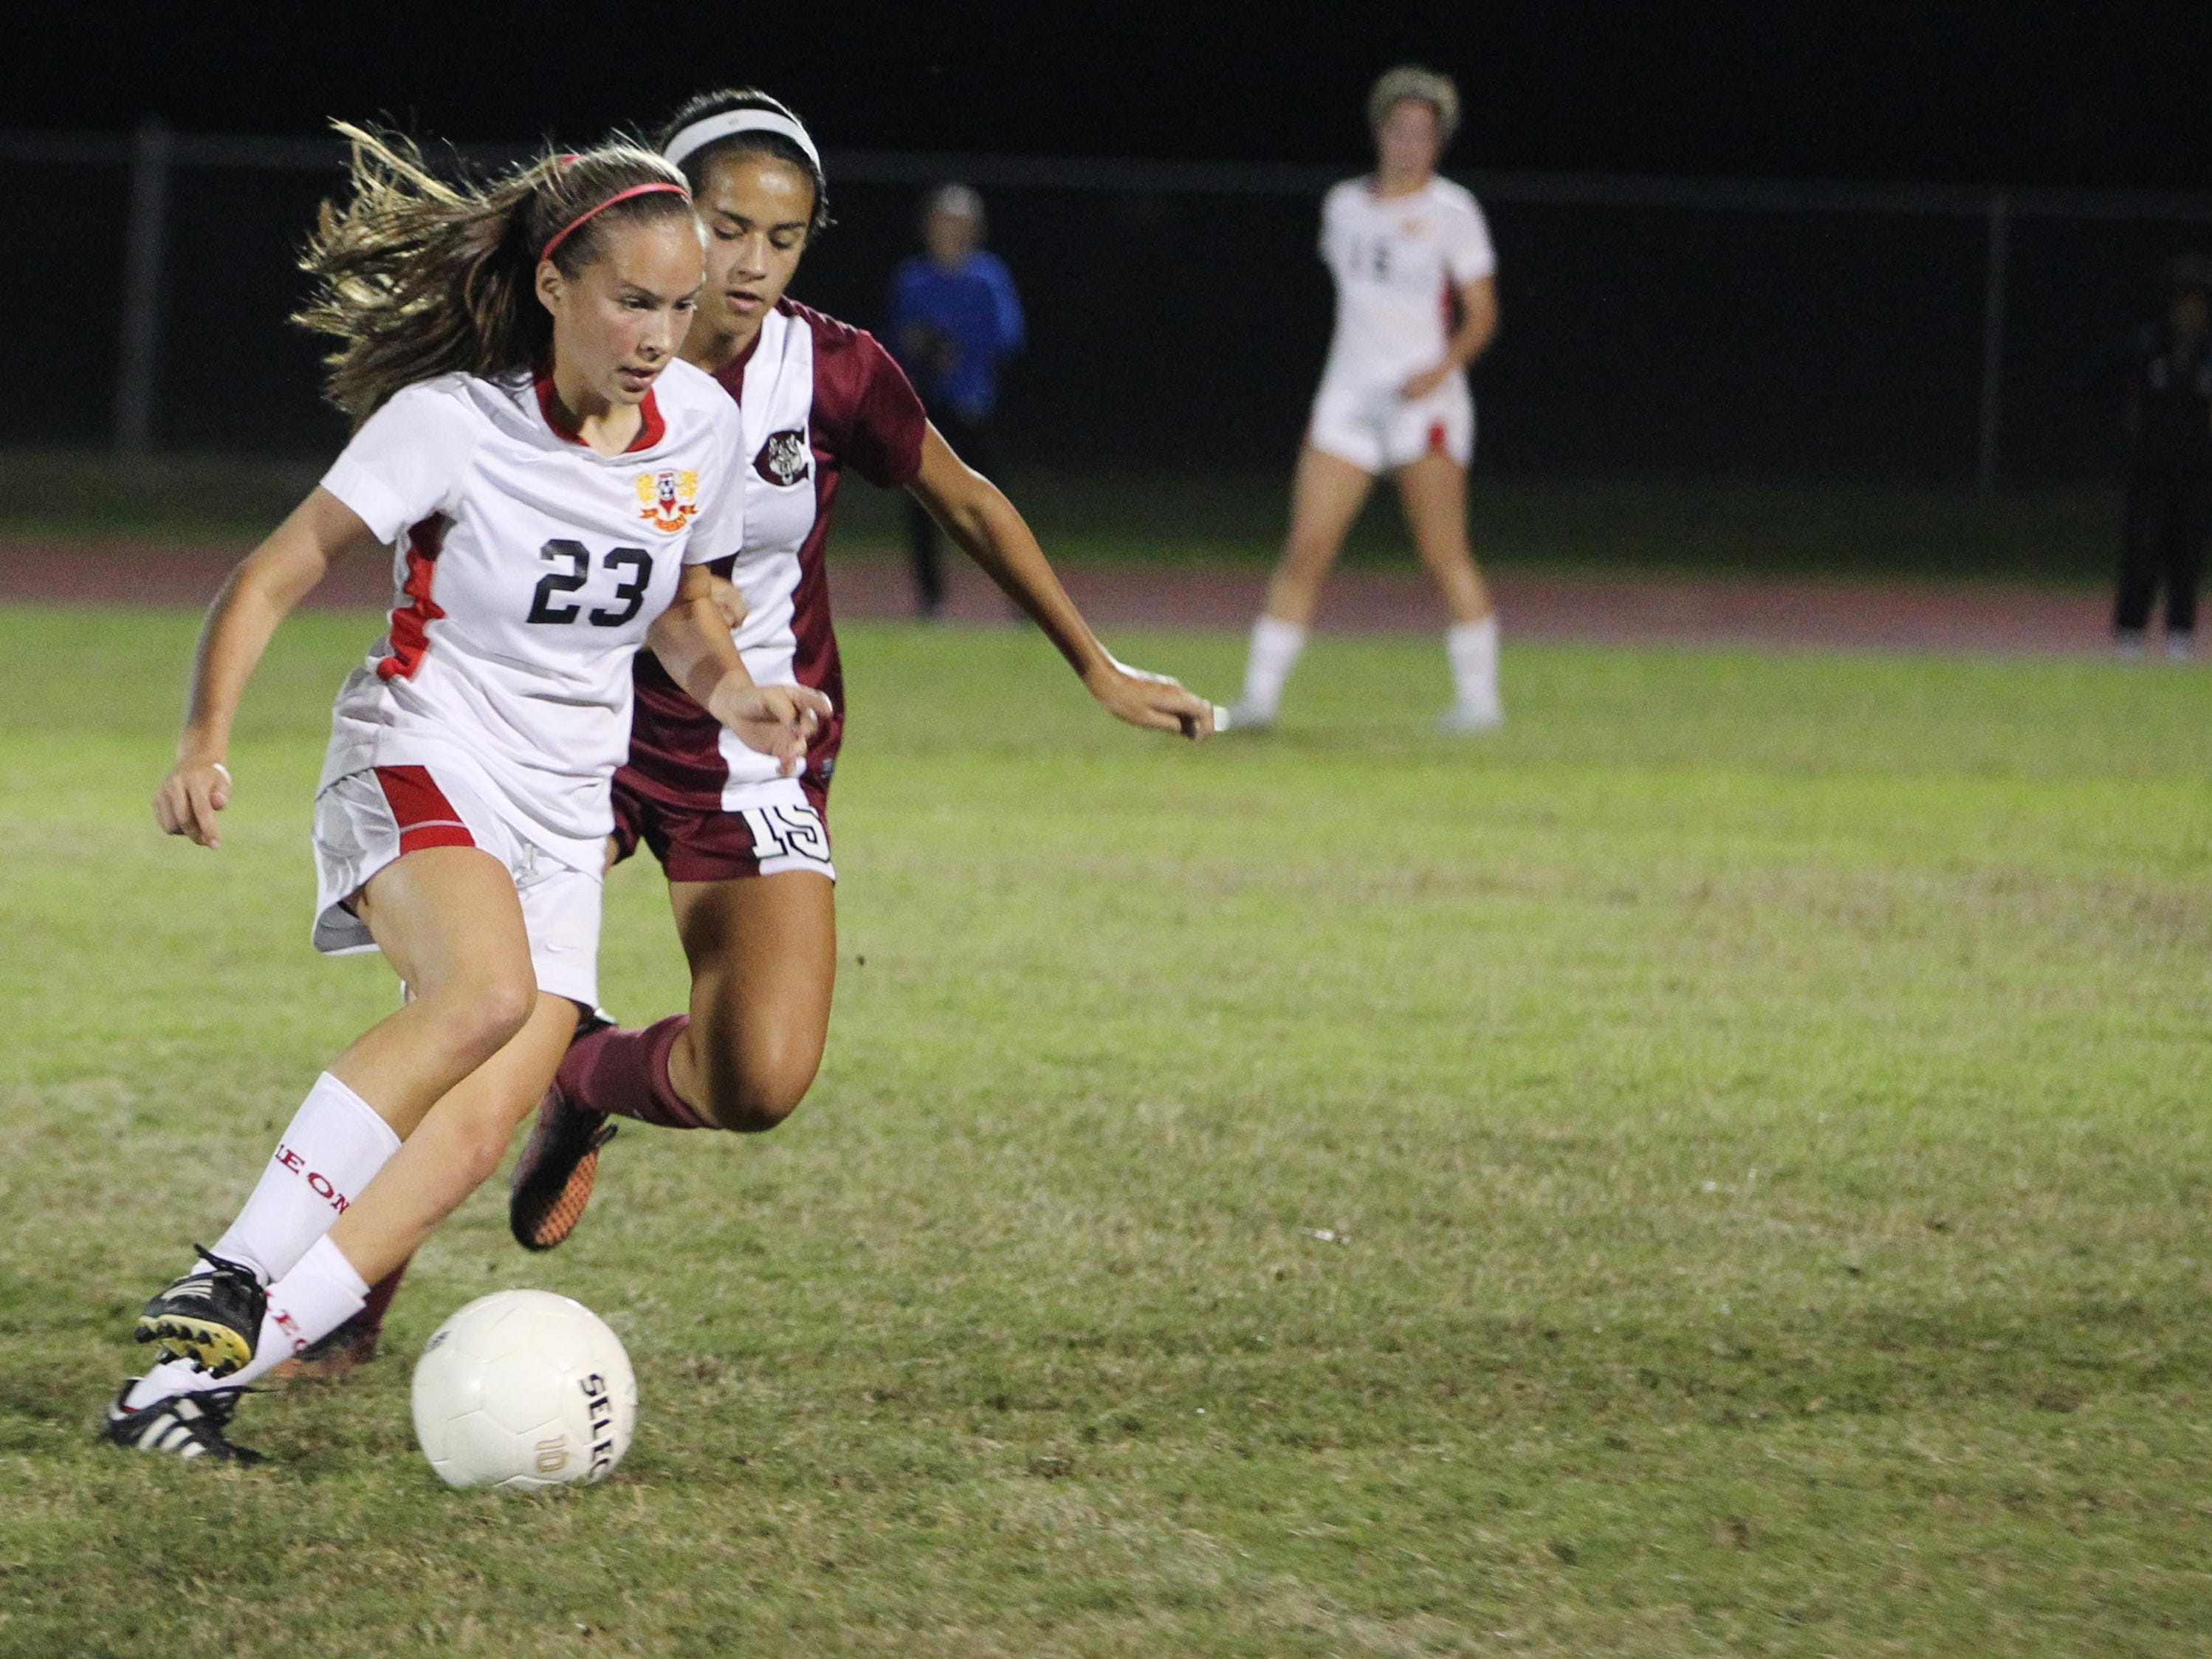 Leon midfielder Isabel Nunez will be acclimating to two new midfielders around her this year, an area that was a key to the Lions' district title last season.